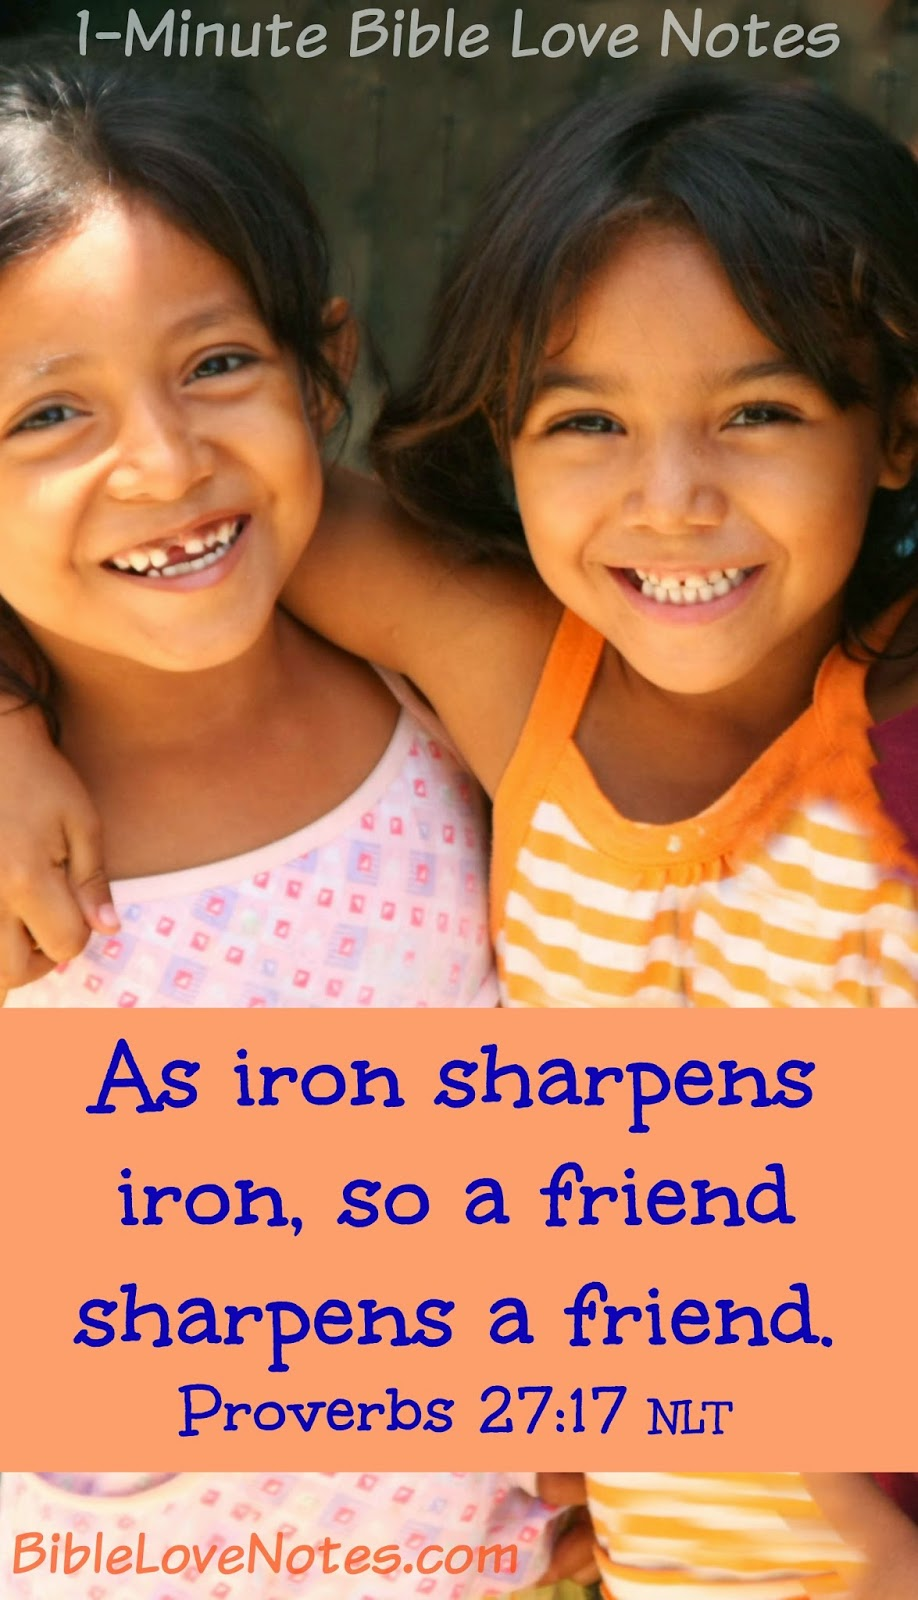 as iron sharpens iron, Proverbs 27:17, friendship